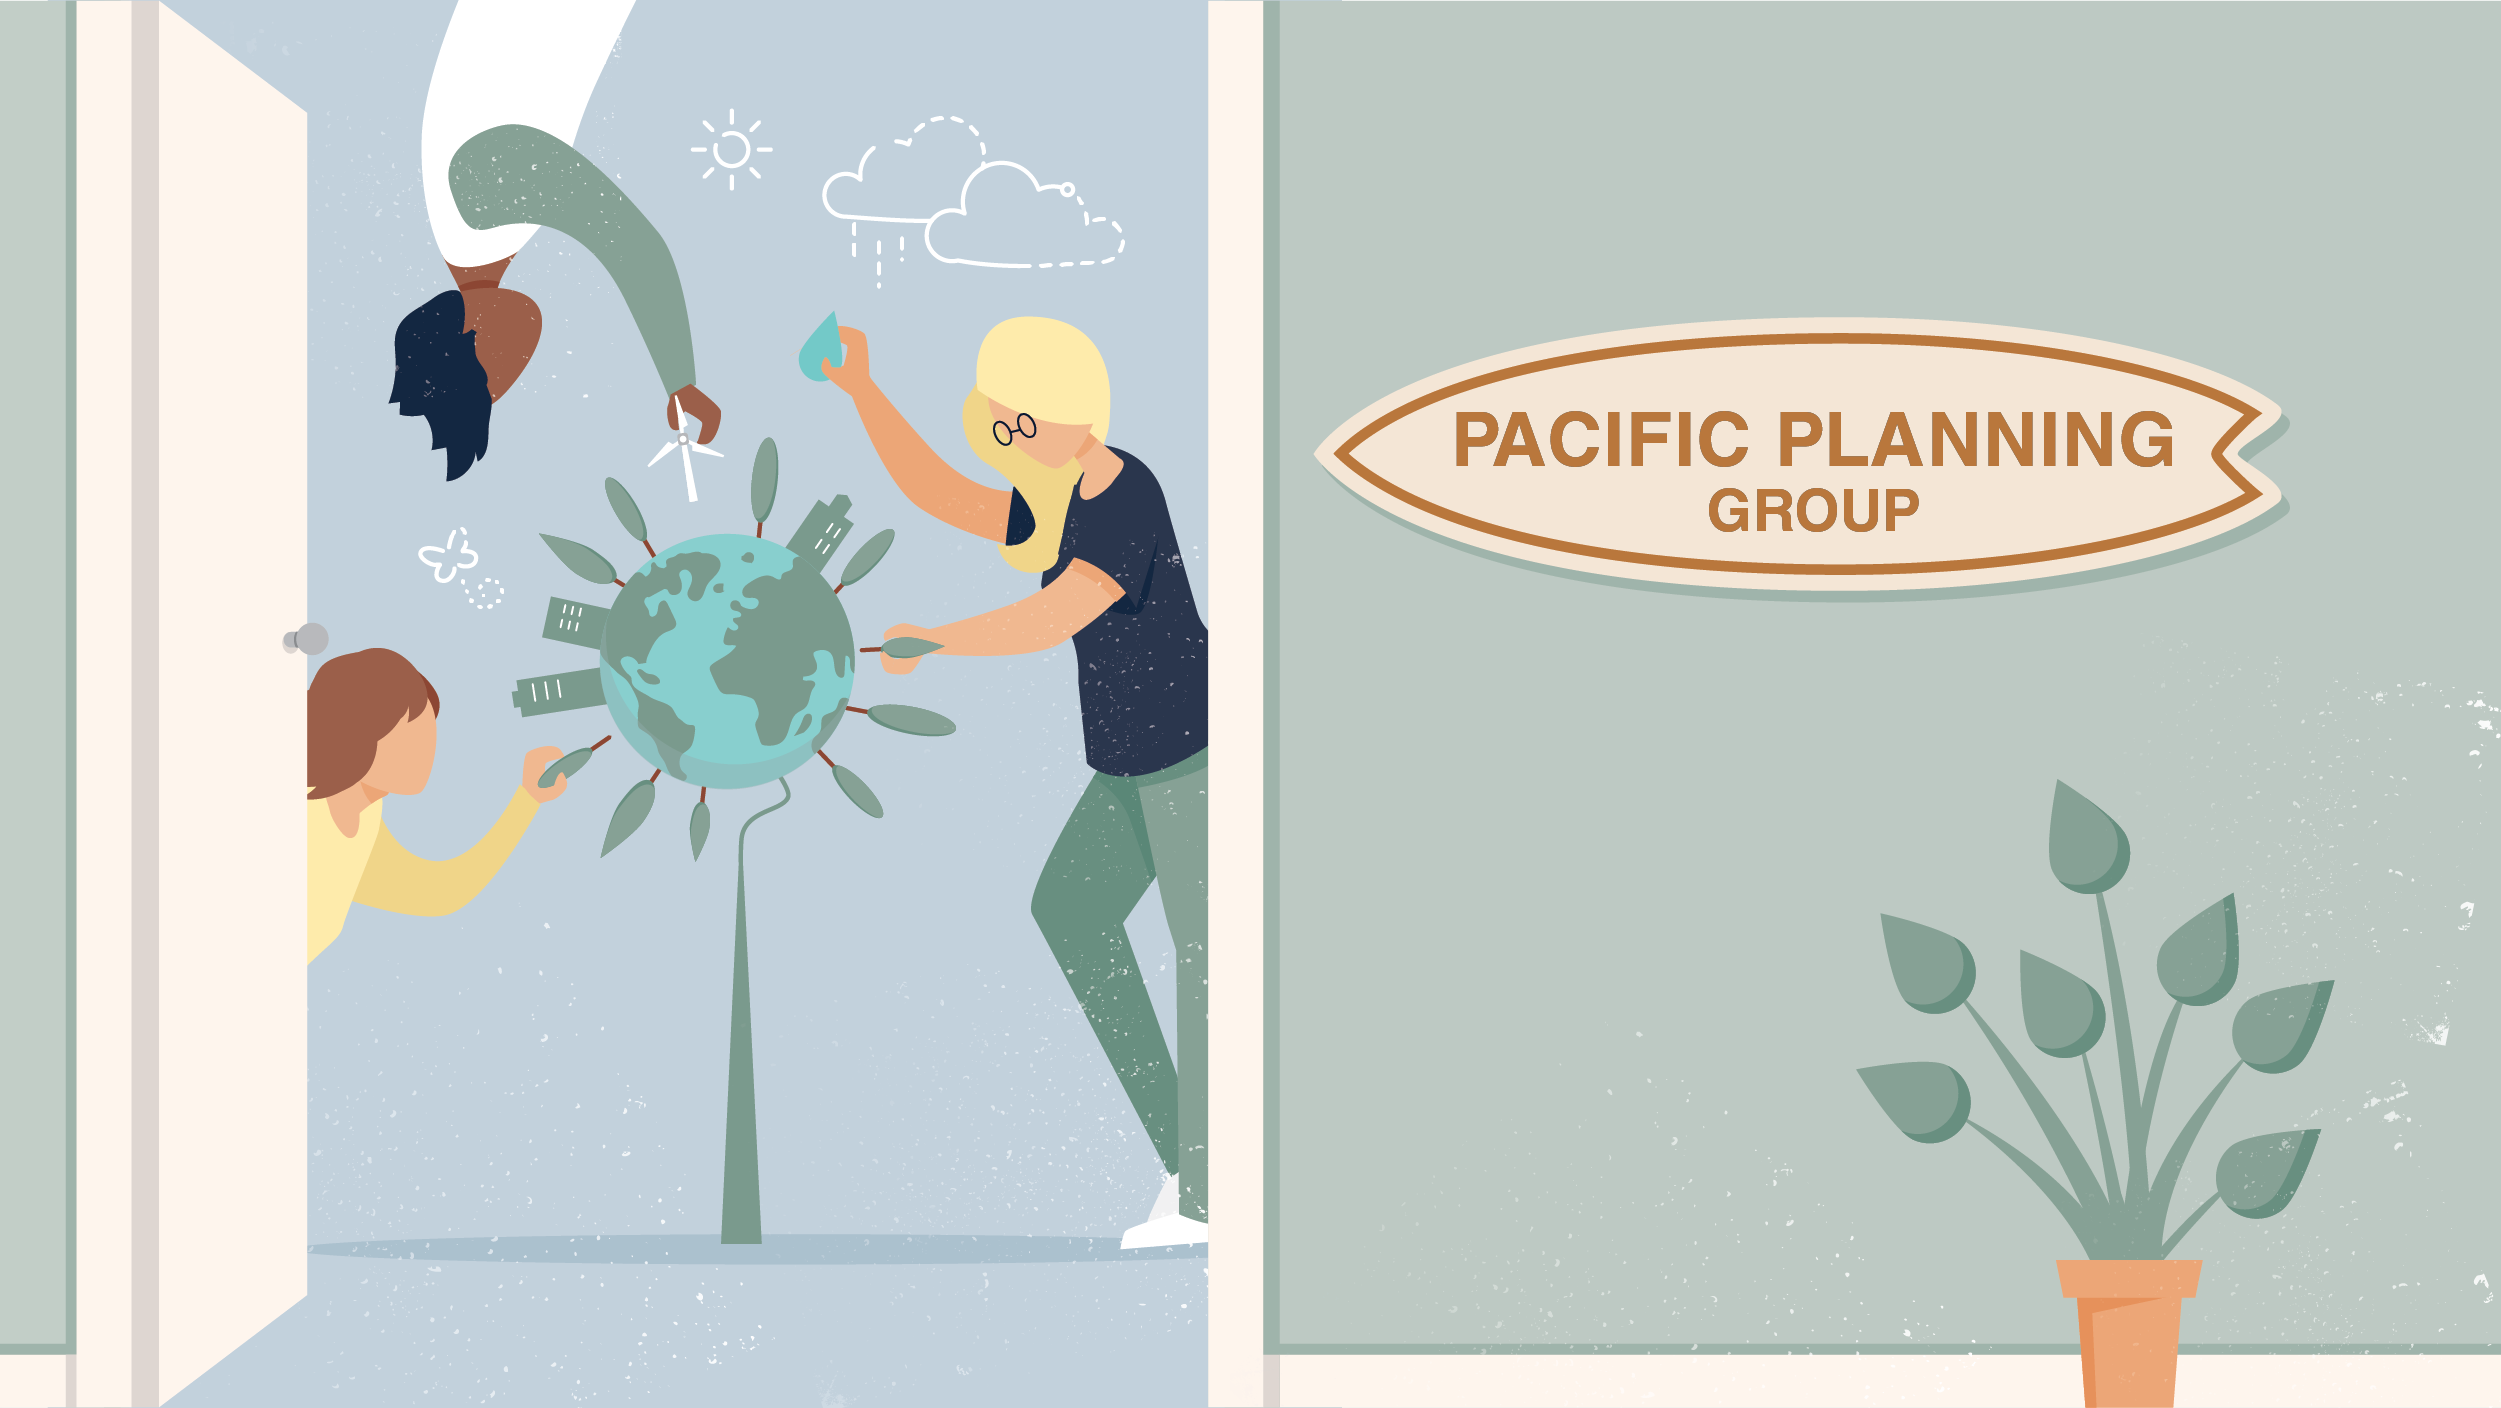 Cove Partner Pacific Planning Group Develops Land through Sustainable Innovation